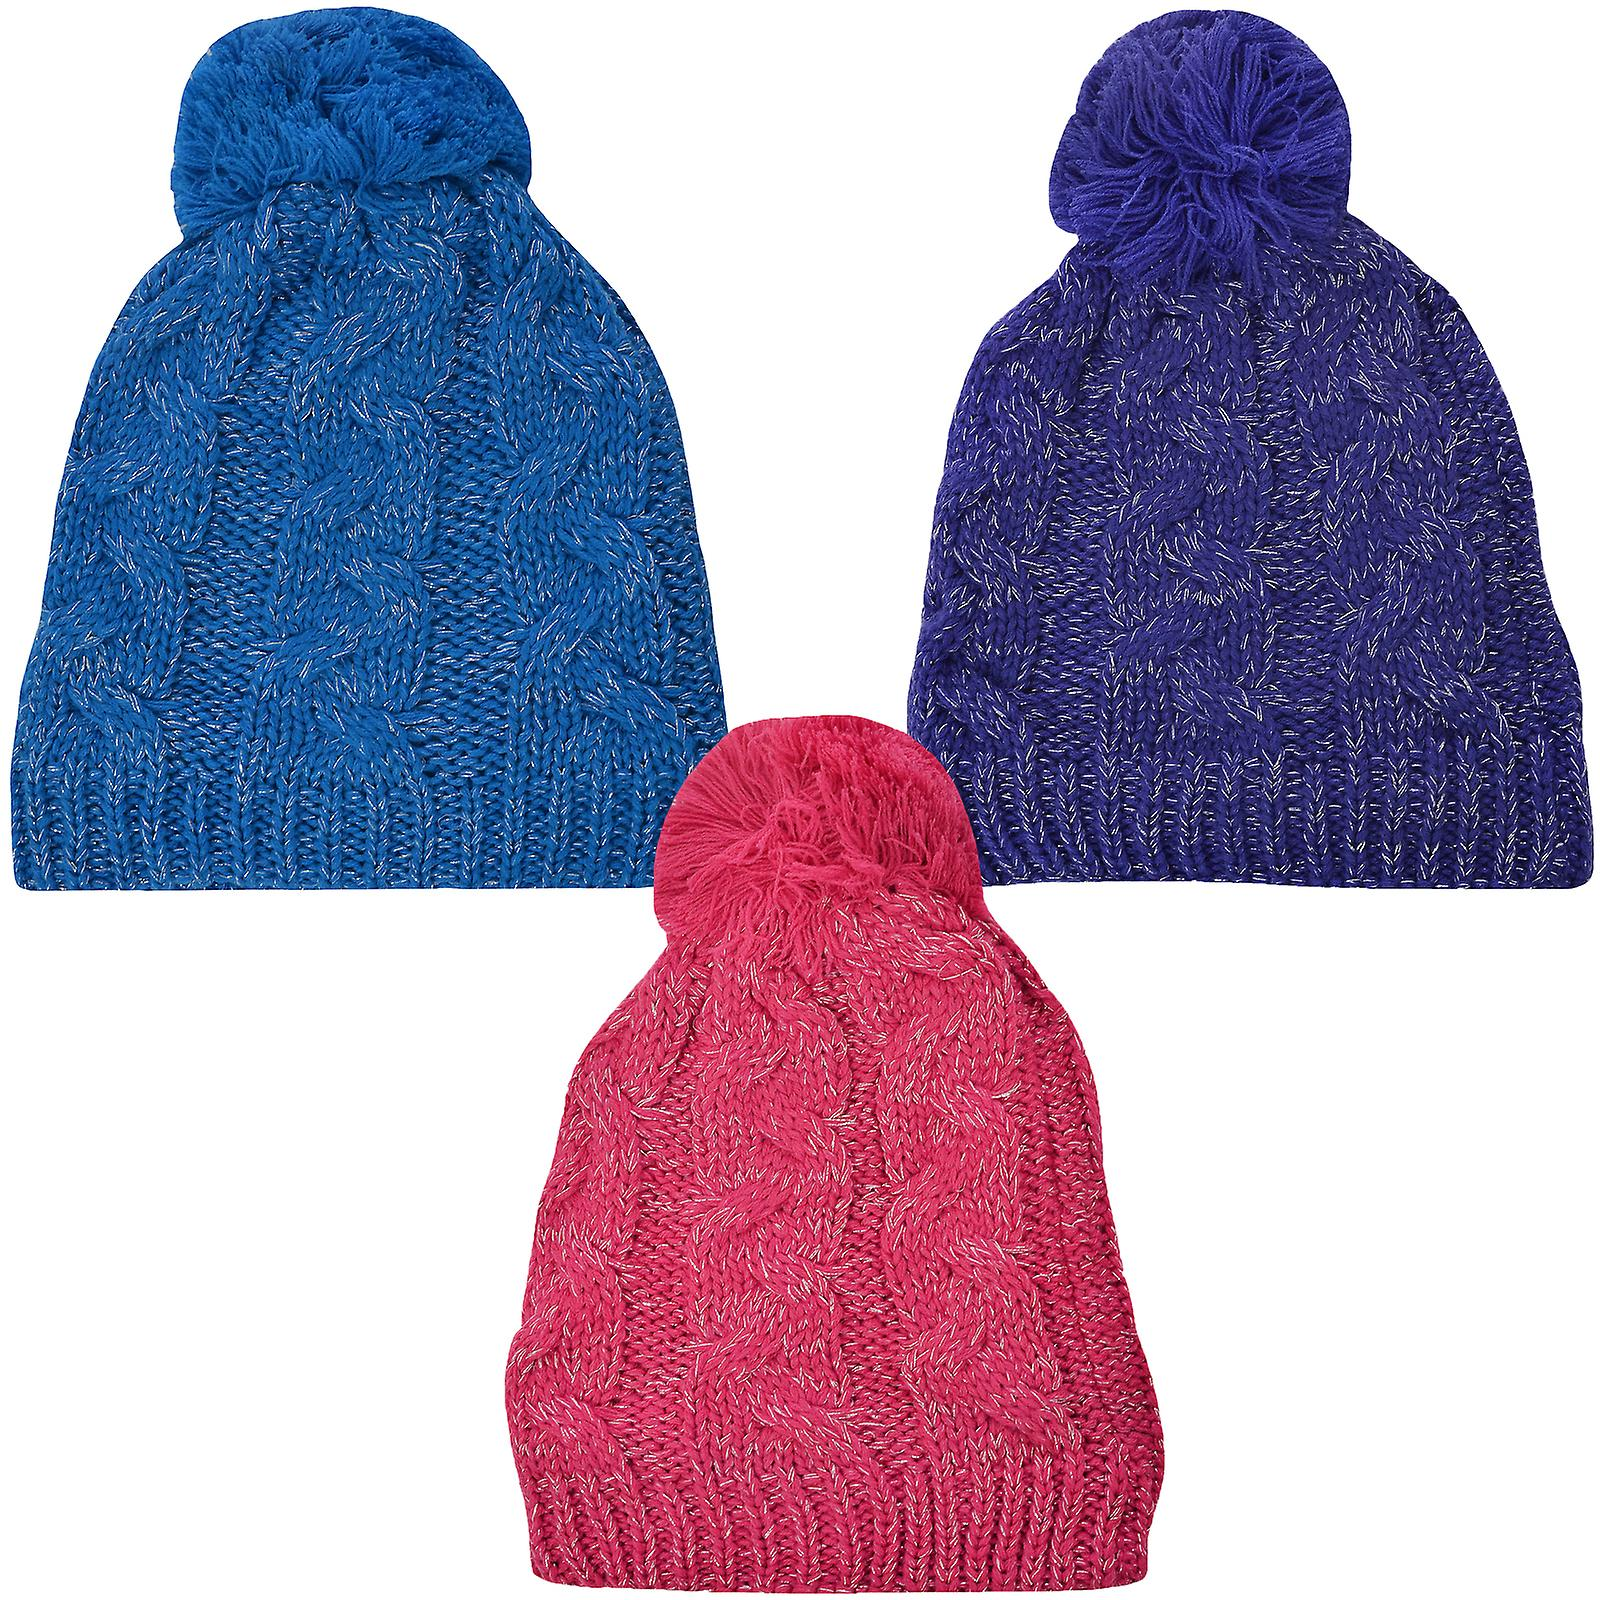 ProClimate Thinsulate Waterproof Winter Cable Knit Pom Pom Bobble Beanie Hat 7b923cb1cc1